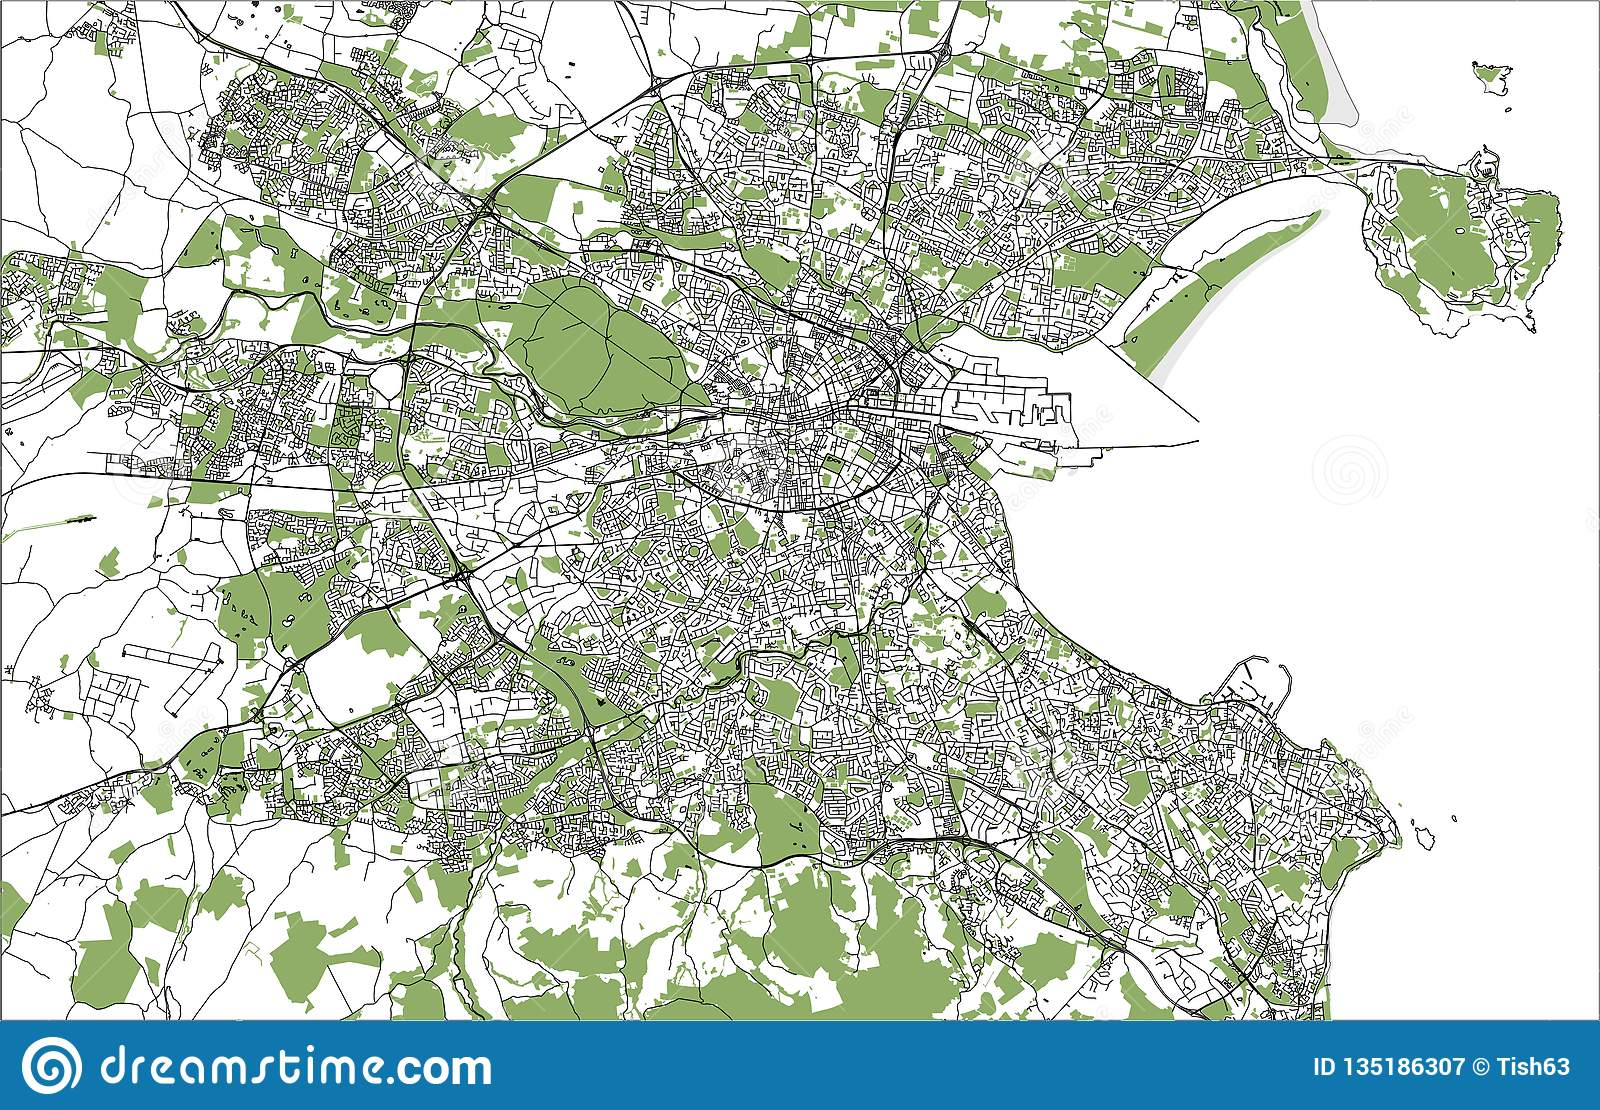 City Map Of Dublin Ireland.Map Of The City Of Dublin Ireland Stock Illustration Illustration